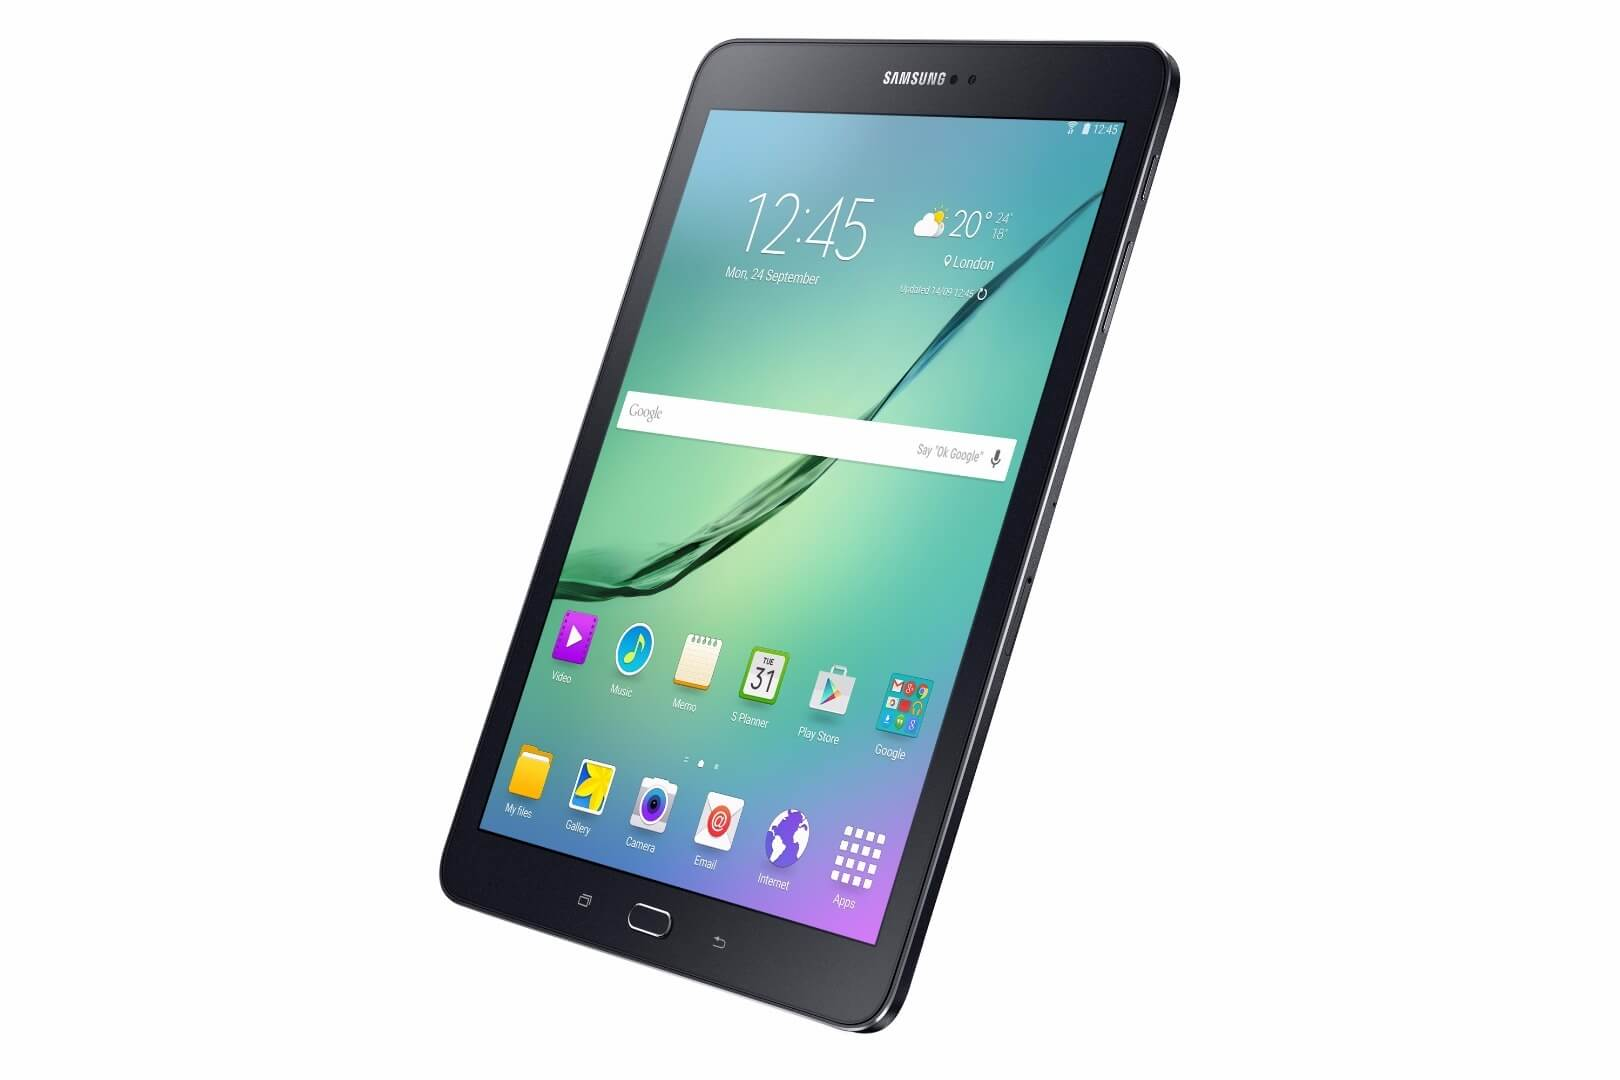 Samsung Debuts Updated Galaxy Tab S2 Tablet, Already on ...